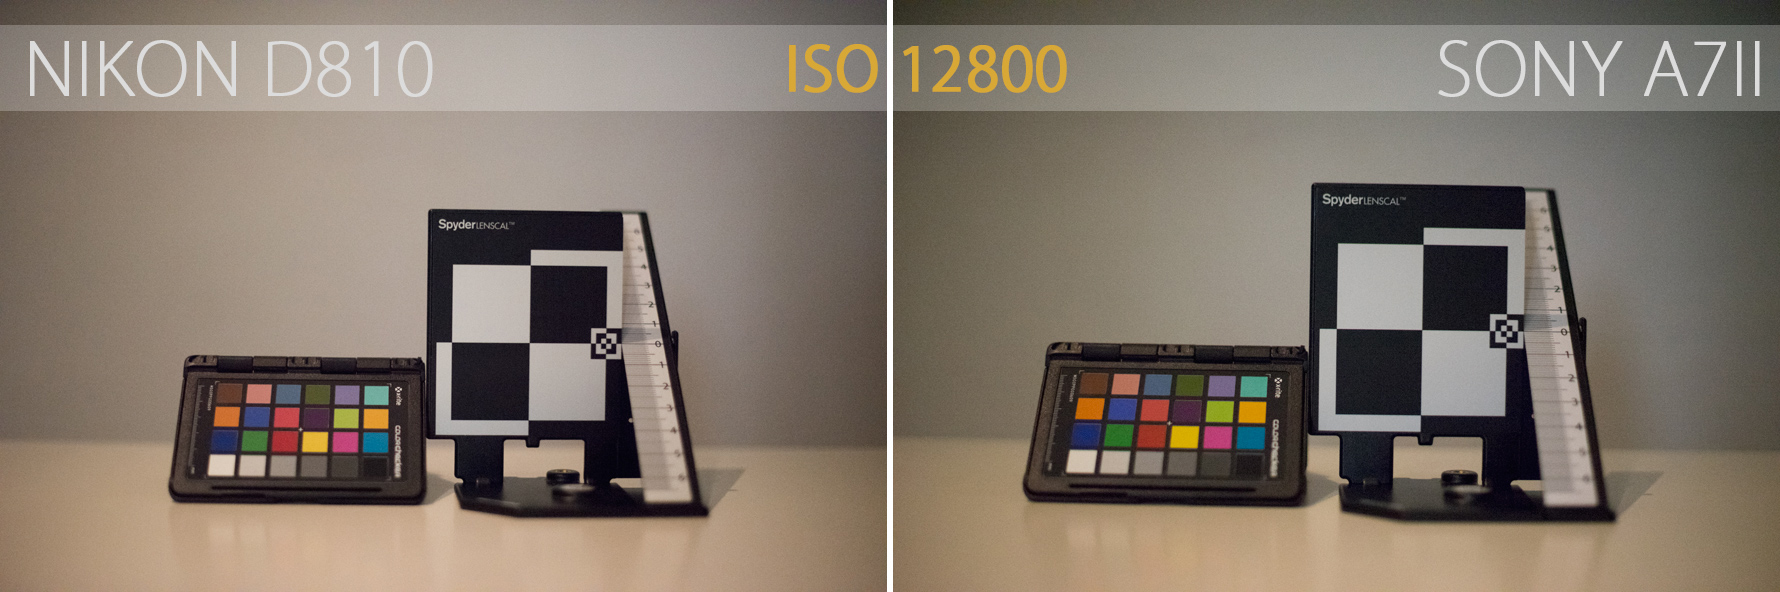 comparison between Nikon D810 and Sony a7II to ISO 12800